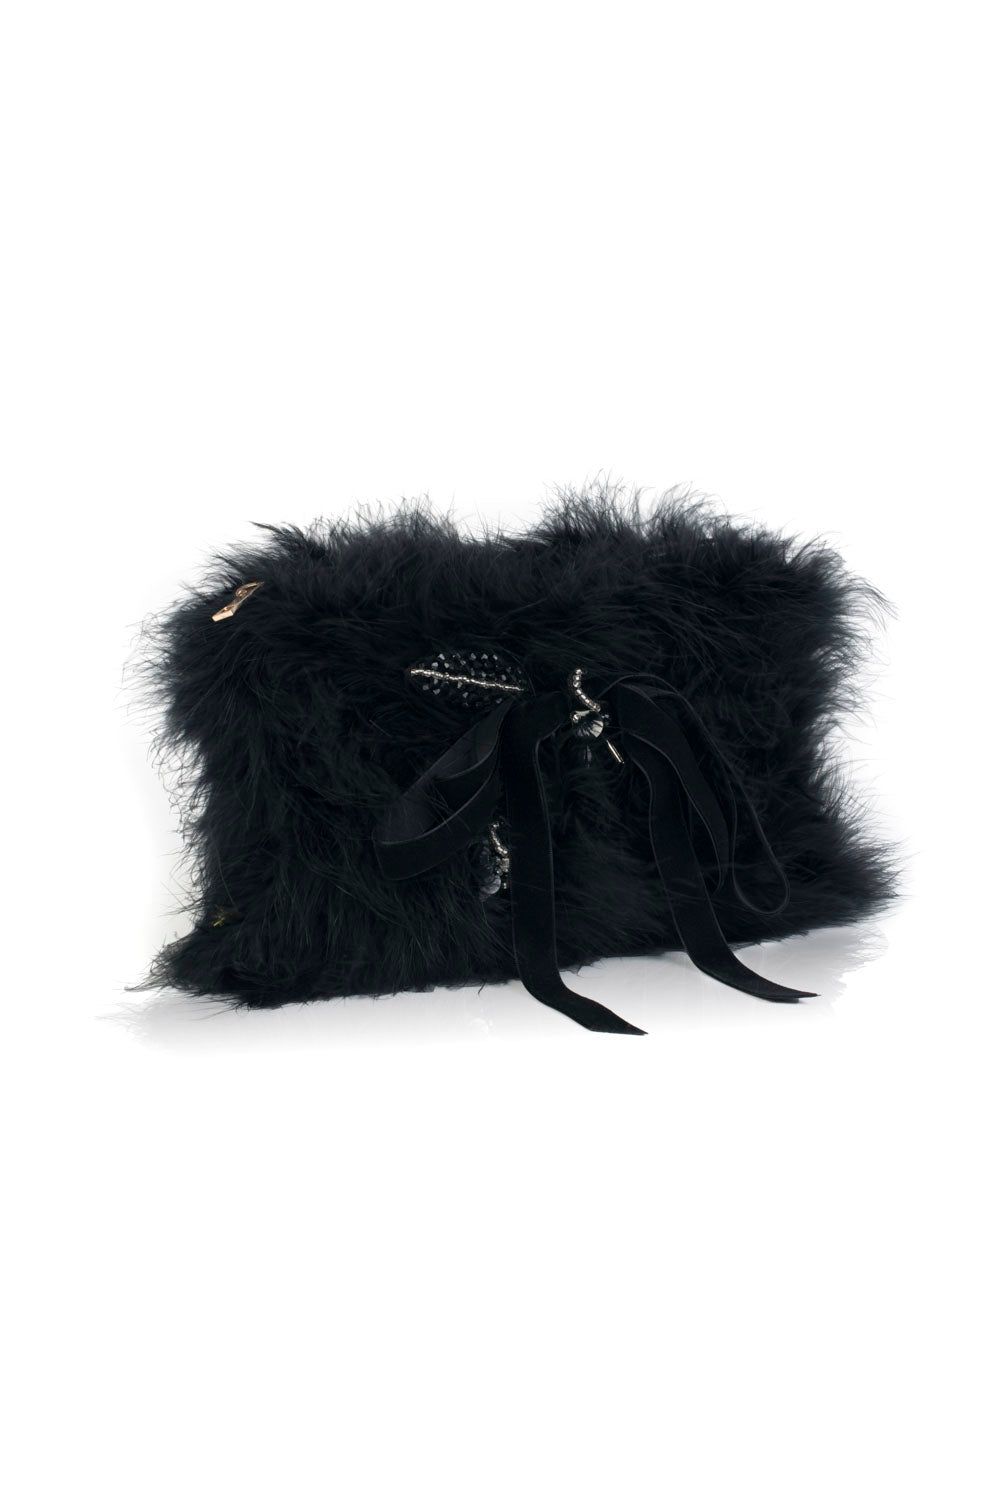 GV1 Feather Bag - Nero